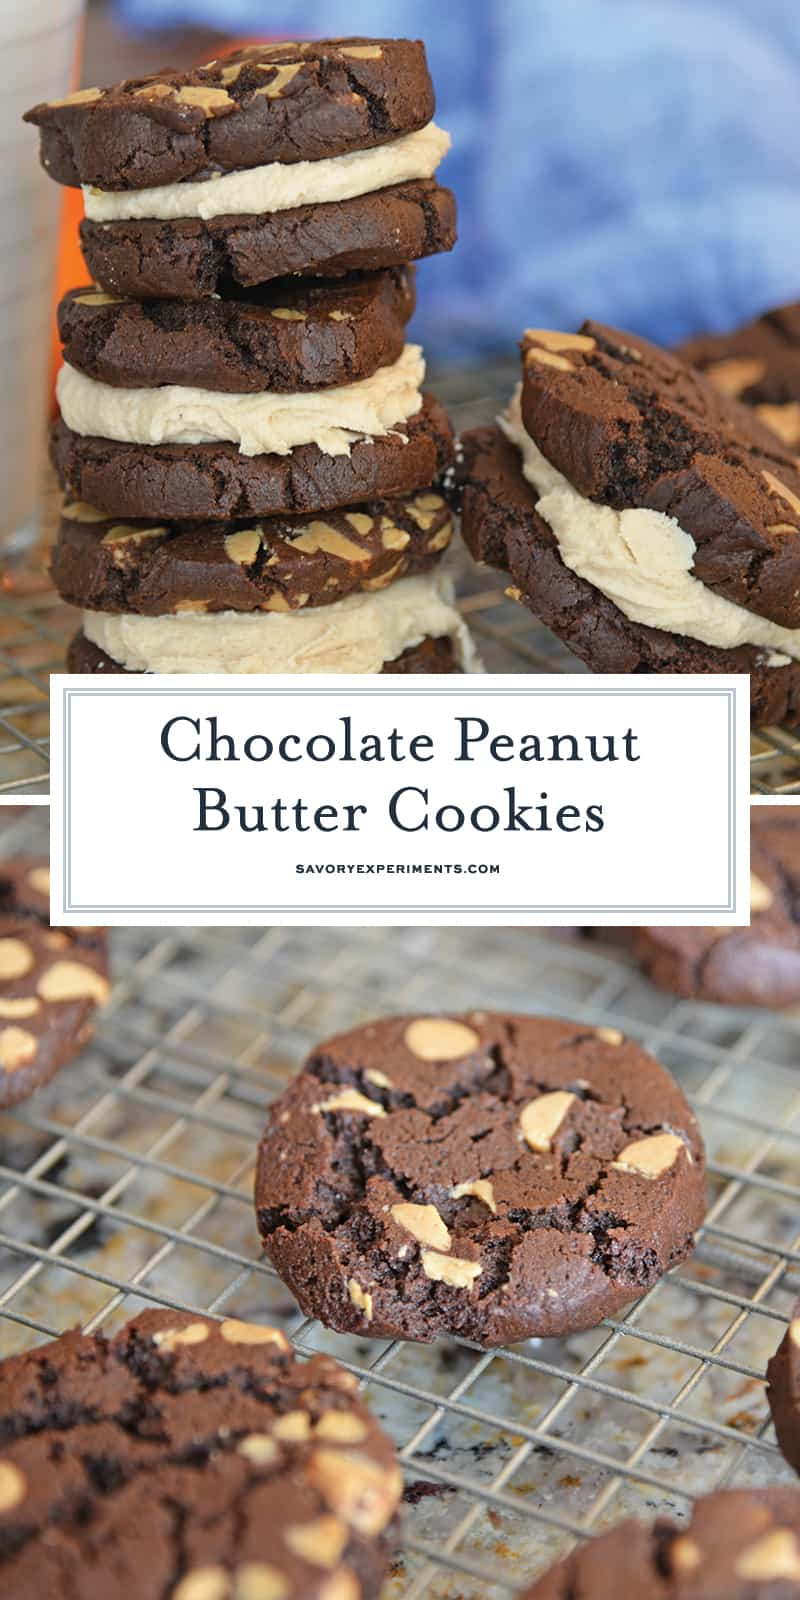 These Chocolate Peanut Butter Cookie Sandwiches are quite possibly the best cookie sandwich you will ever eat. Highly addictive: bake with caution! #chocolatepeanutbuttersandwichcookies #sandwichcookies #peanutbutter www.savoryexperiments.com